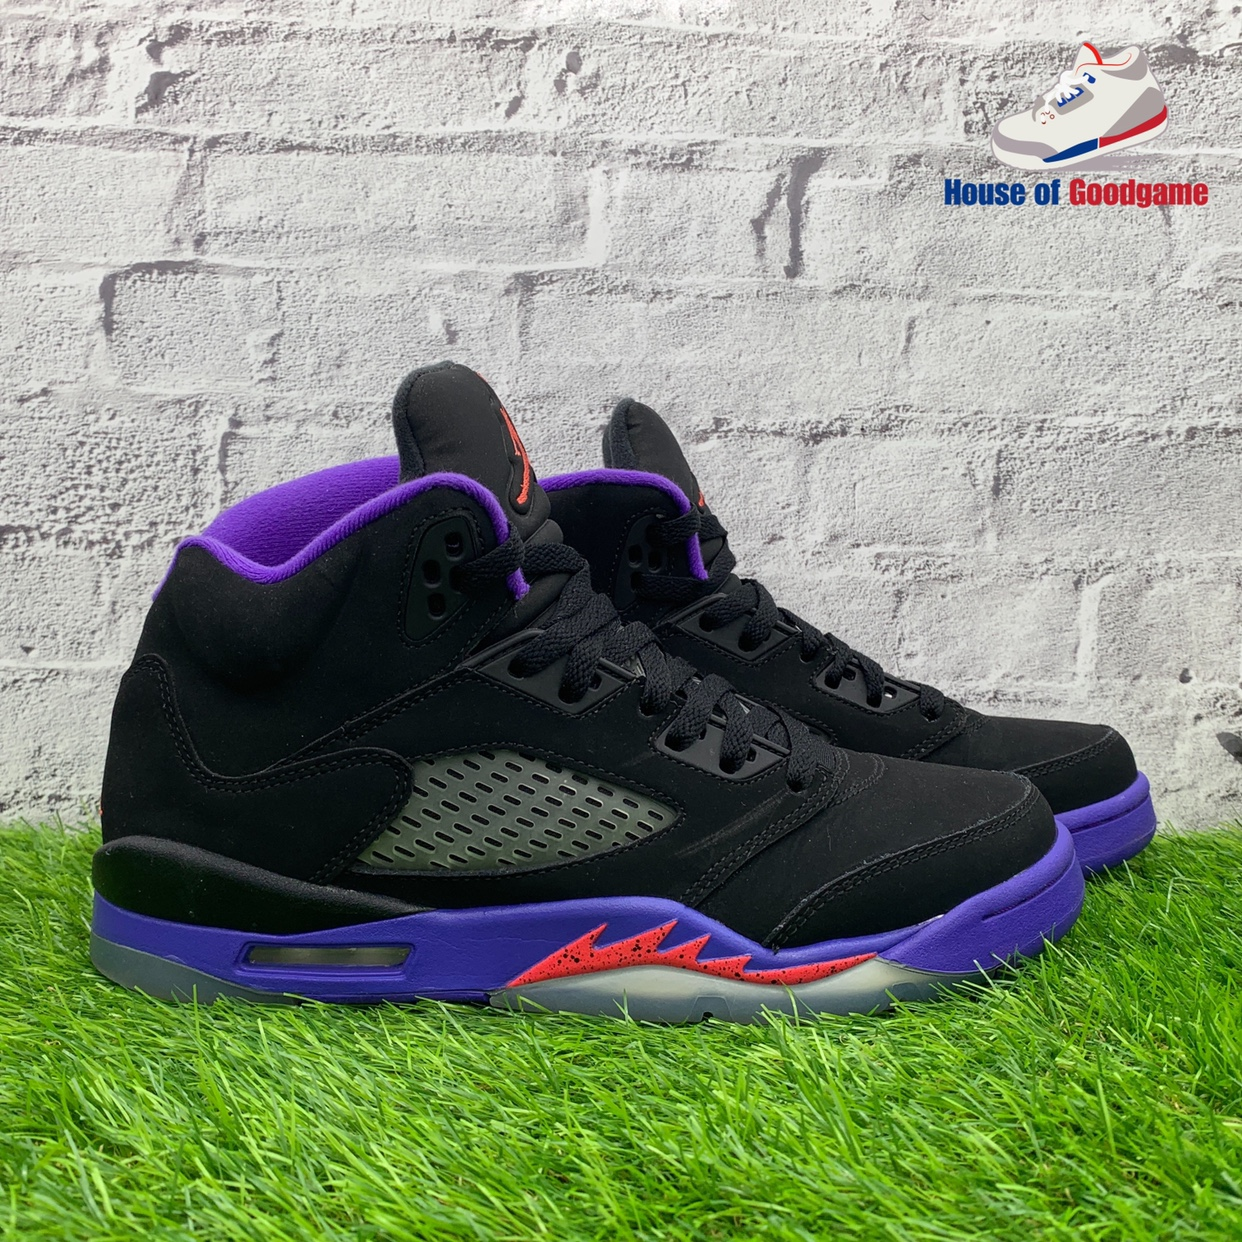 sale retailer 08c95 9ee1a Air Jordan 5 Retro 'Raptors' Colour: Black/Ember... - Depop